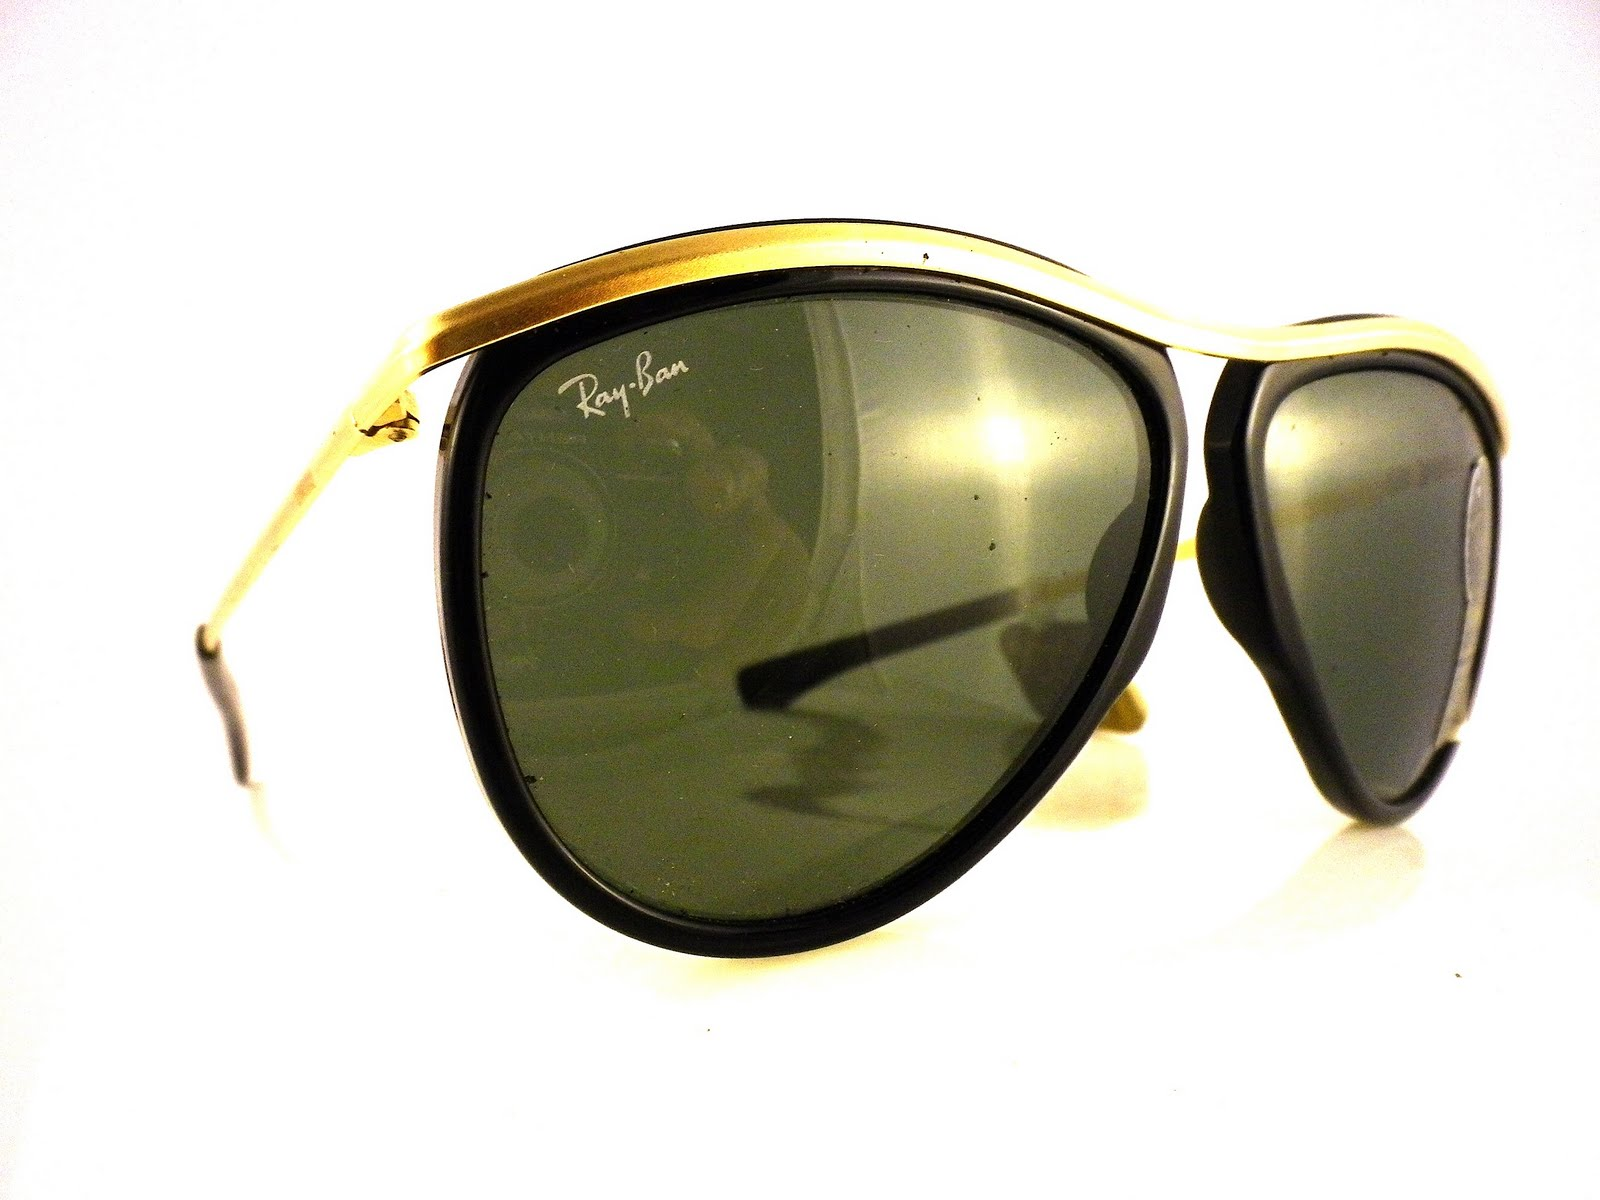 ced766e3c5fad7 Ray Ban Olympian 1 deluxe (Bausch   Lomb)